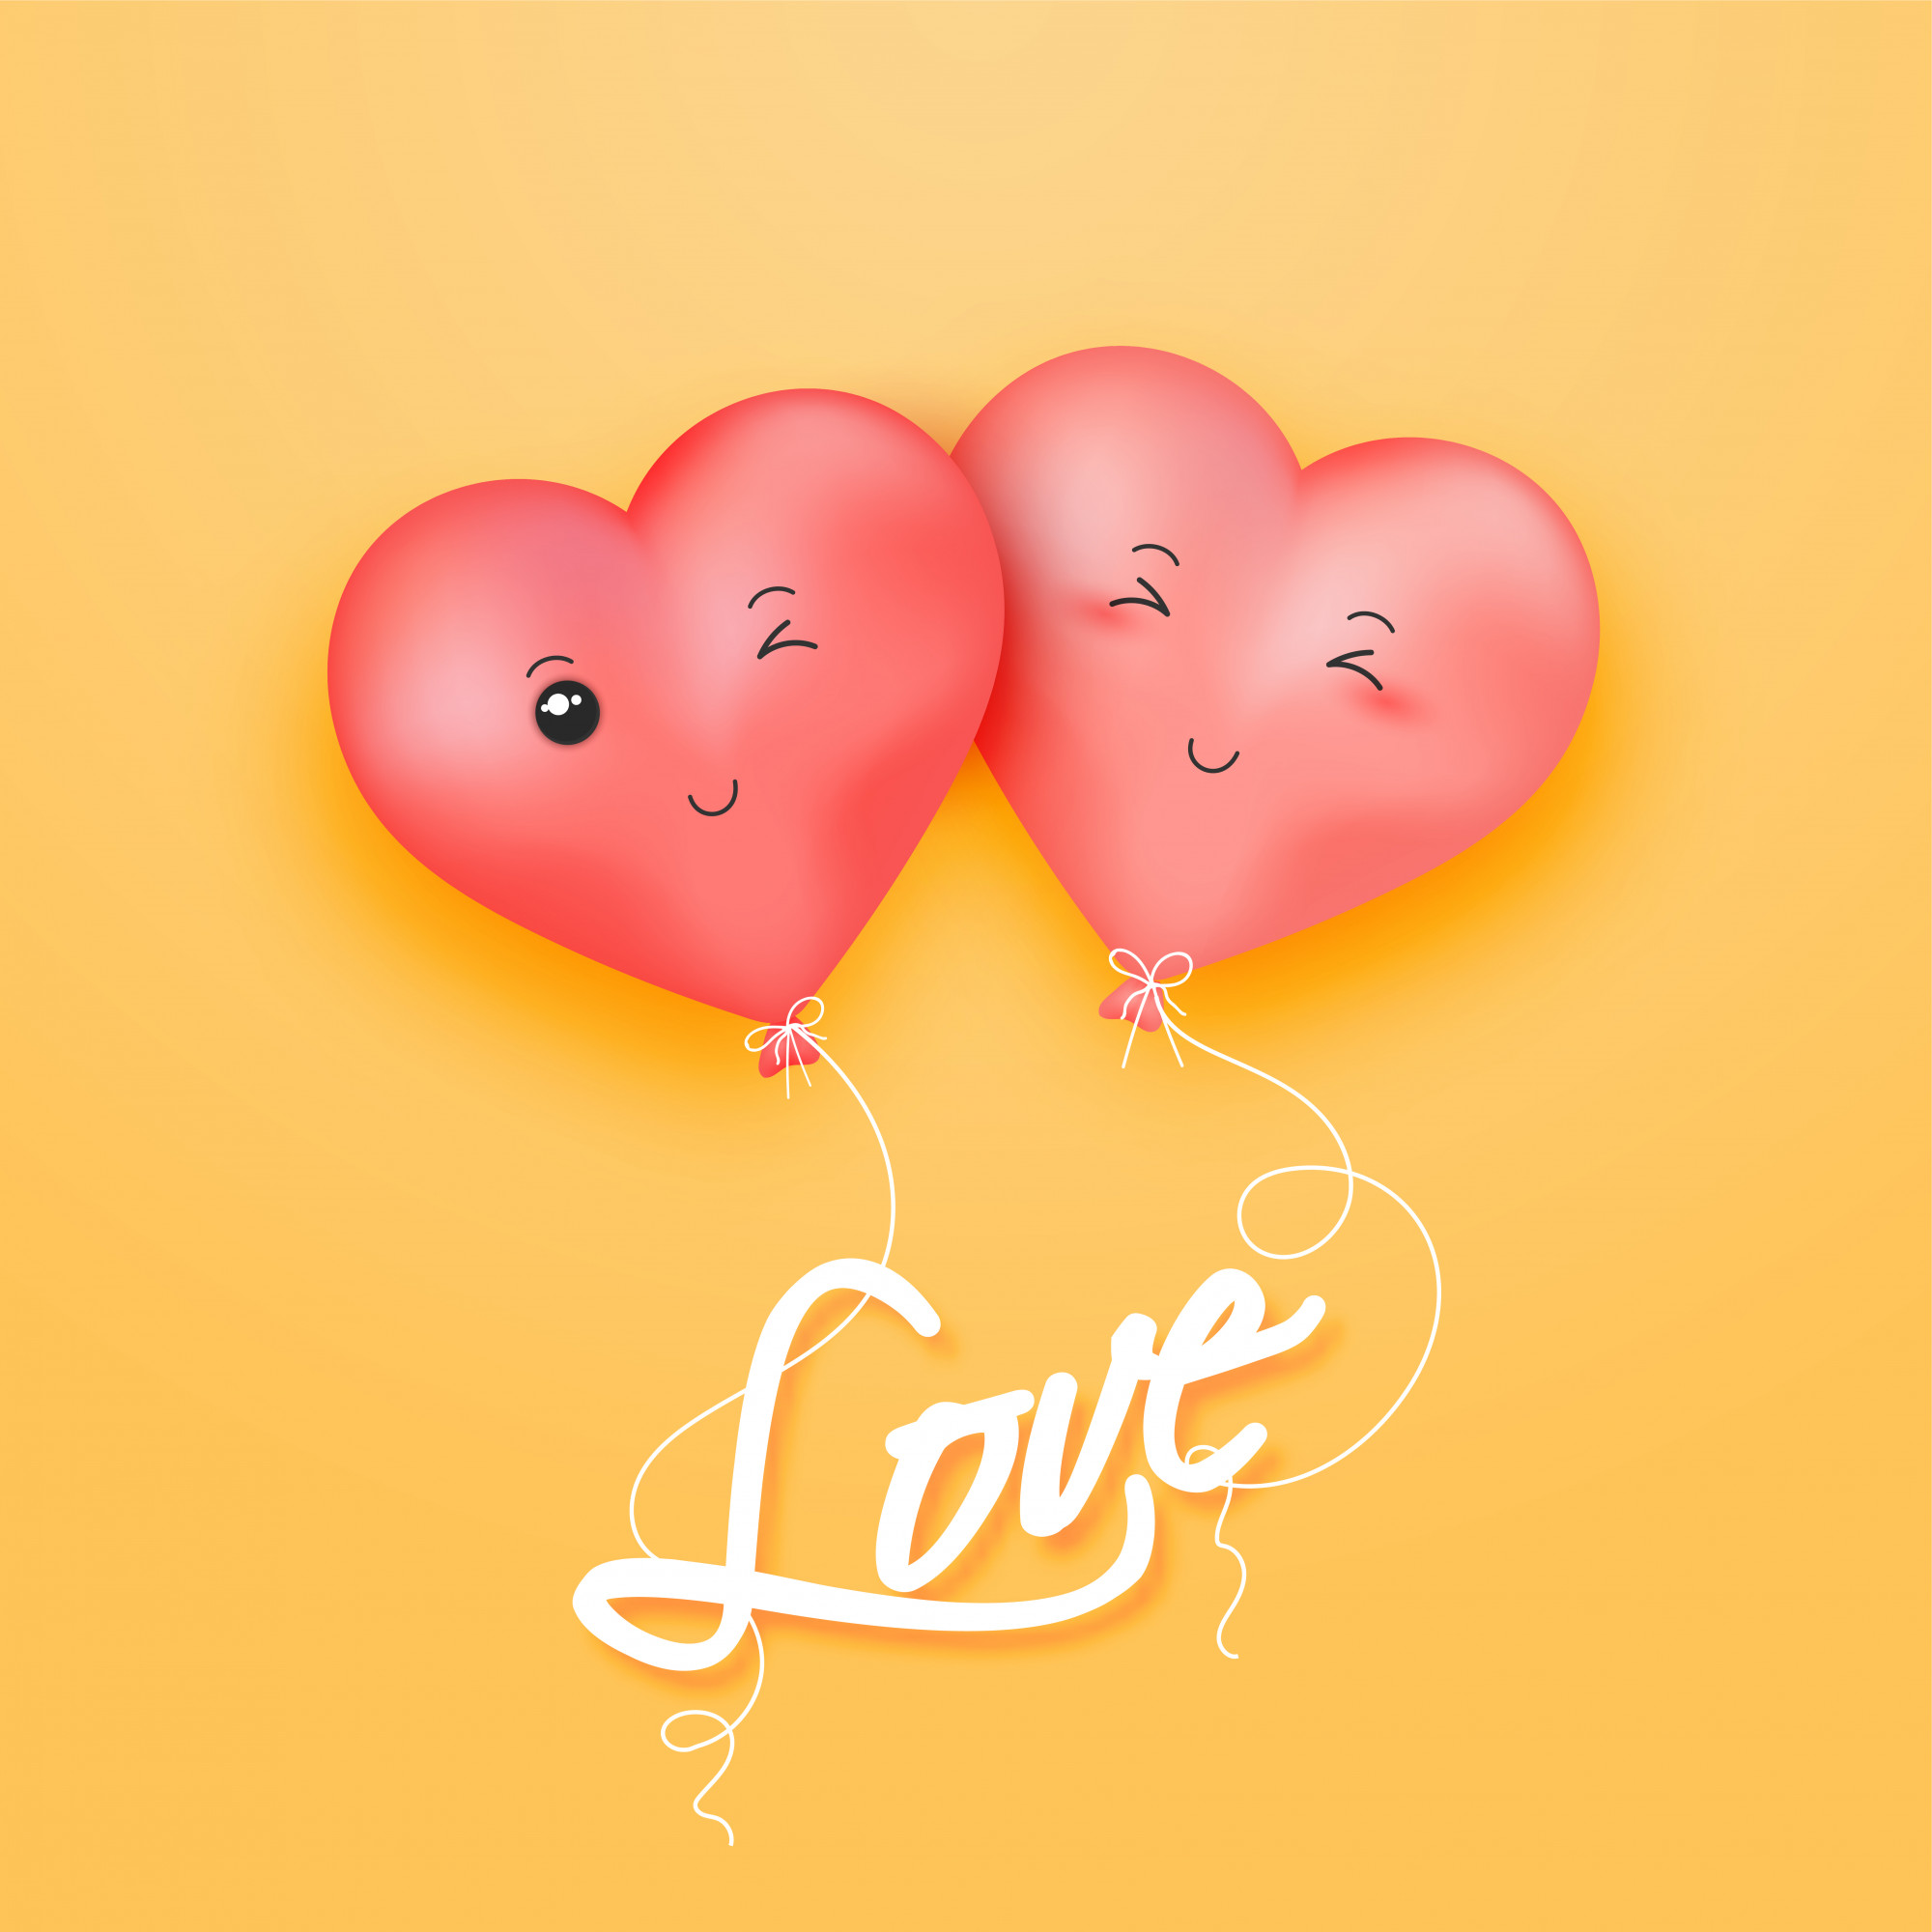 Love greeting card design with illustration of cute heart balloons